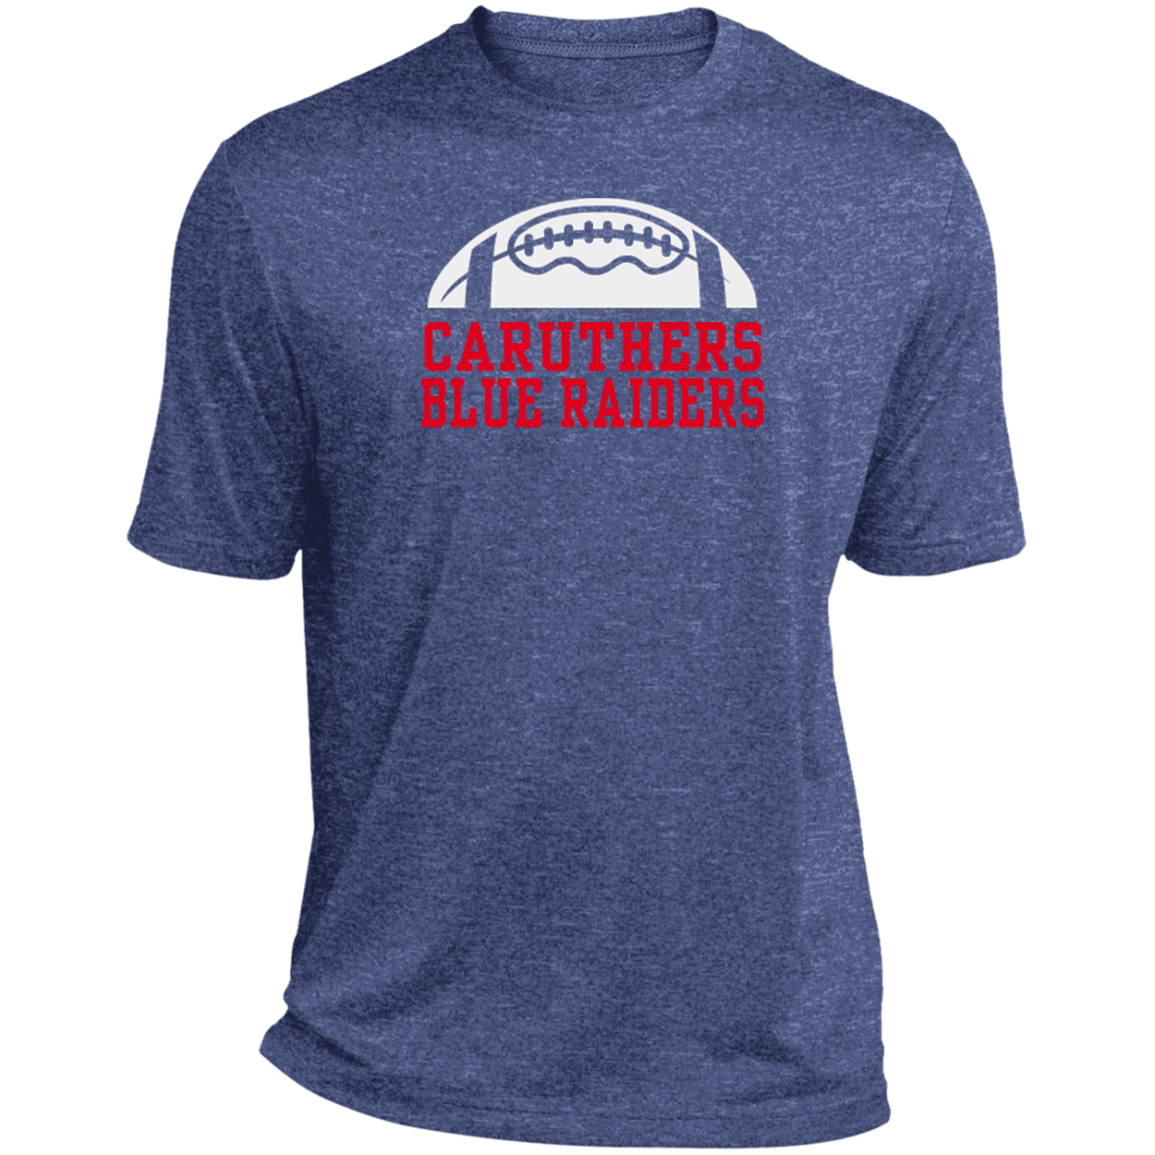 8c7589a5 Caruthers High School Heather Dri-Fit Moisture-Wicking Tee for Him -  SpiritShop.com